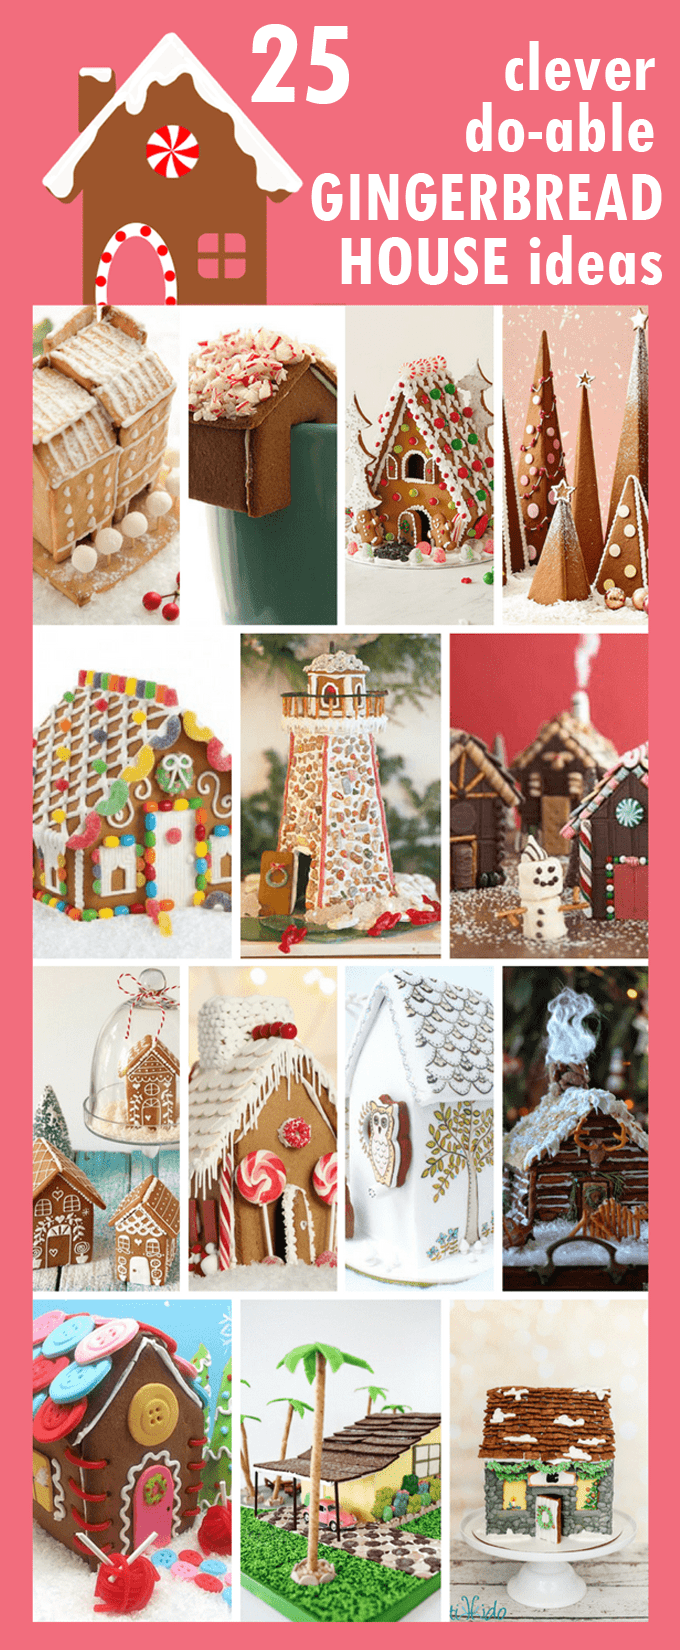 A roundup of 25 GINGERBREAD HOUSE ideas and tips on how to make your own for Christmas. Clever, do-able ideas that anyone can do.  #gingerbreadhouse #christmas